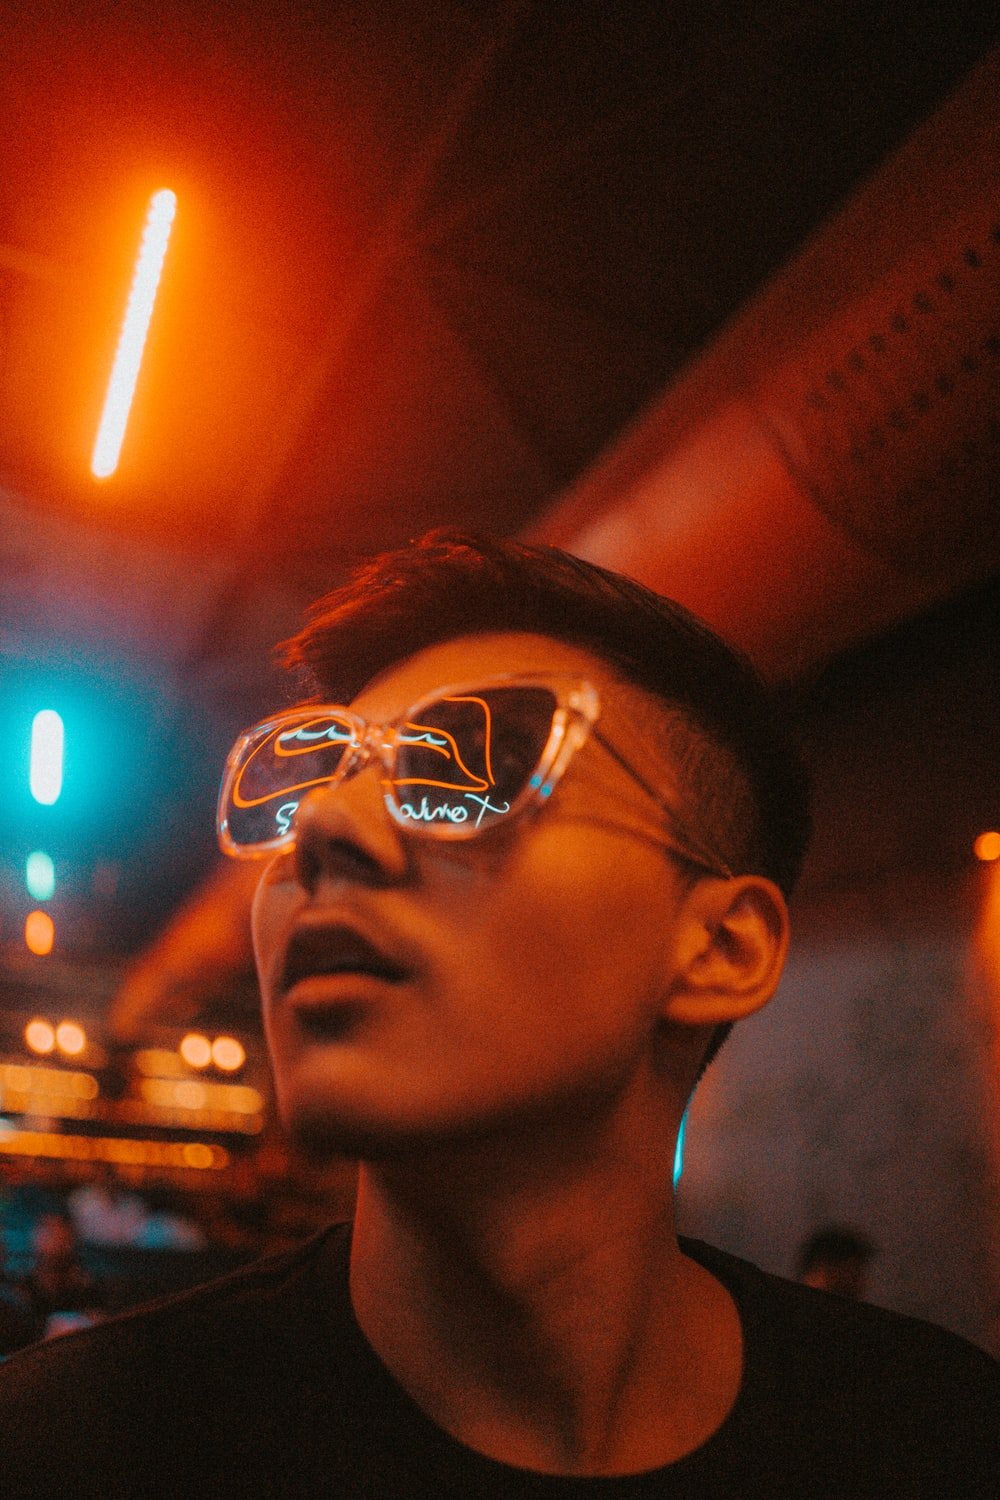 man in sunglasses looking up